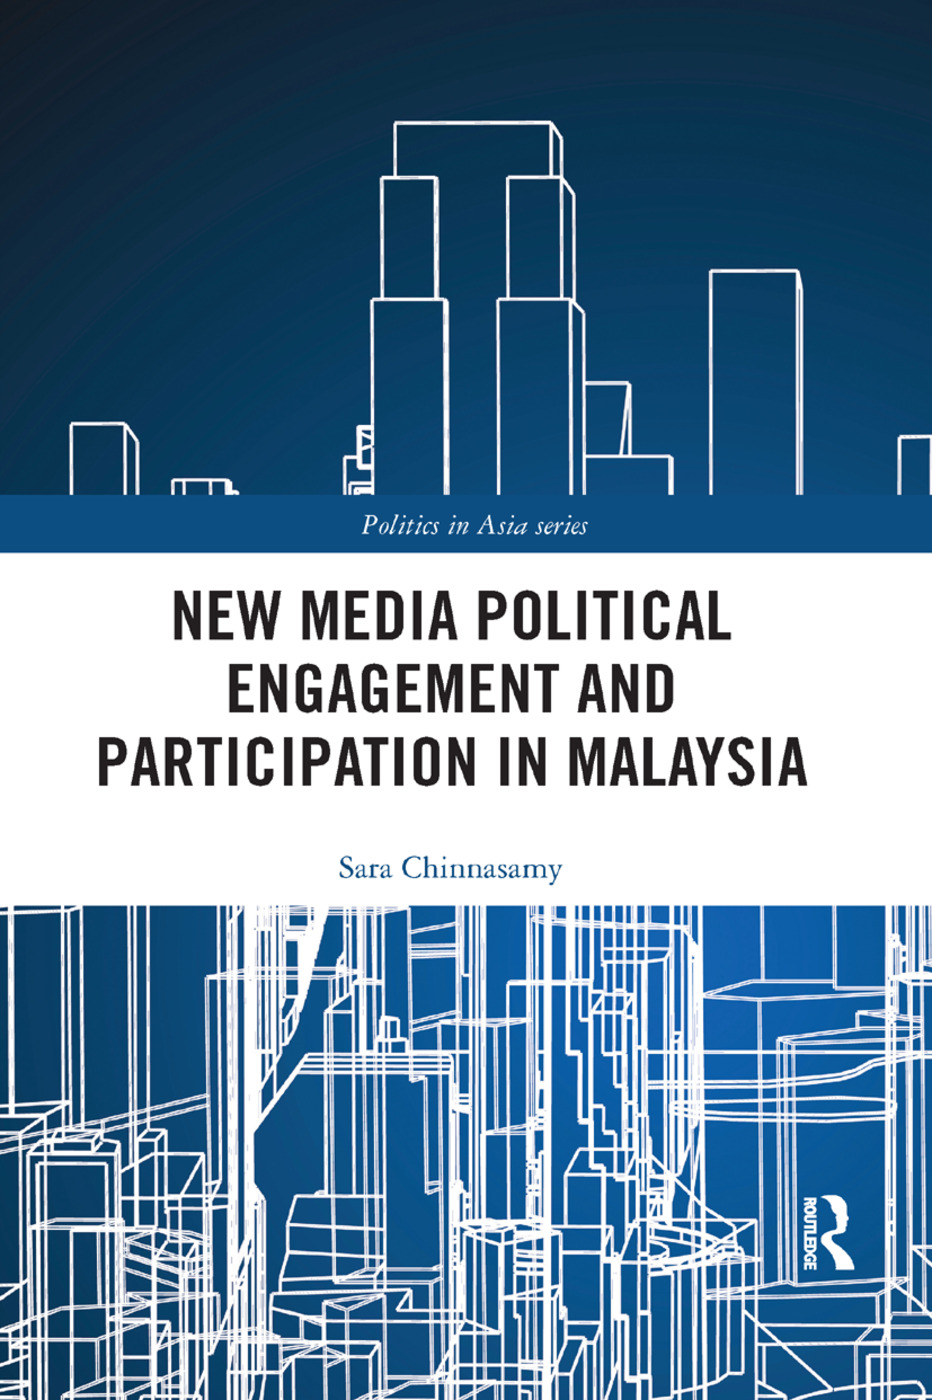 New Media Political Engagement And Participation in Malaysia book cover